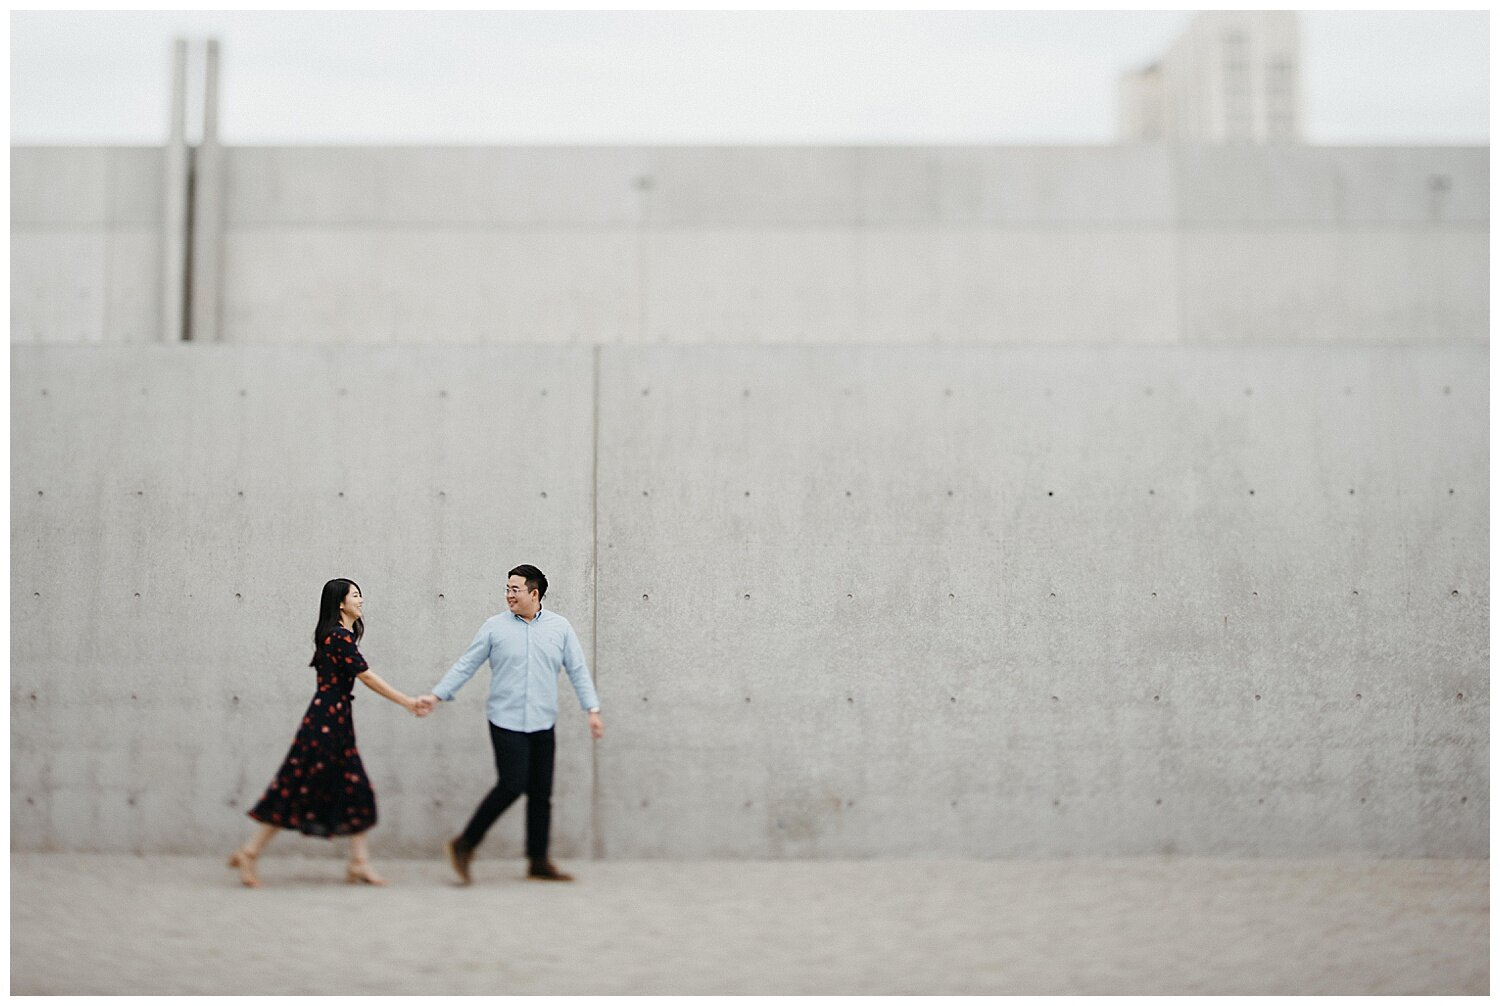 Contemporary Art Museum St Louis Engagement - Zach and Rosalie Wedding Photography - St Louis Wedding Photography_0001.jpg